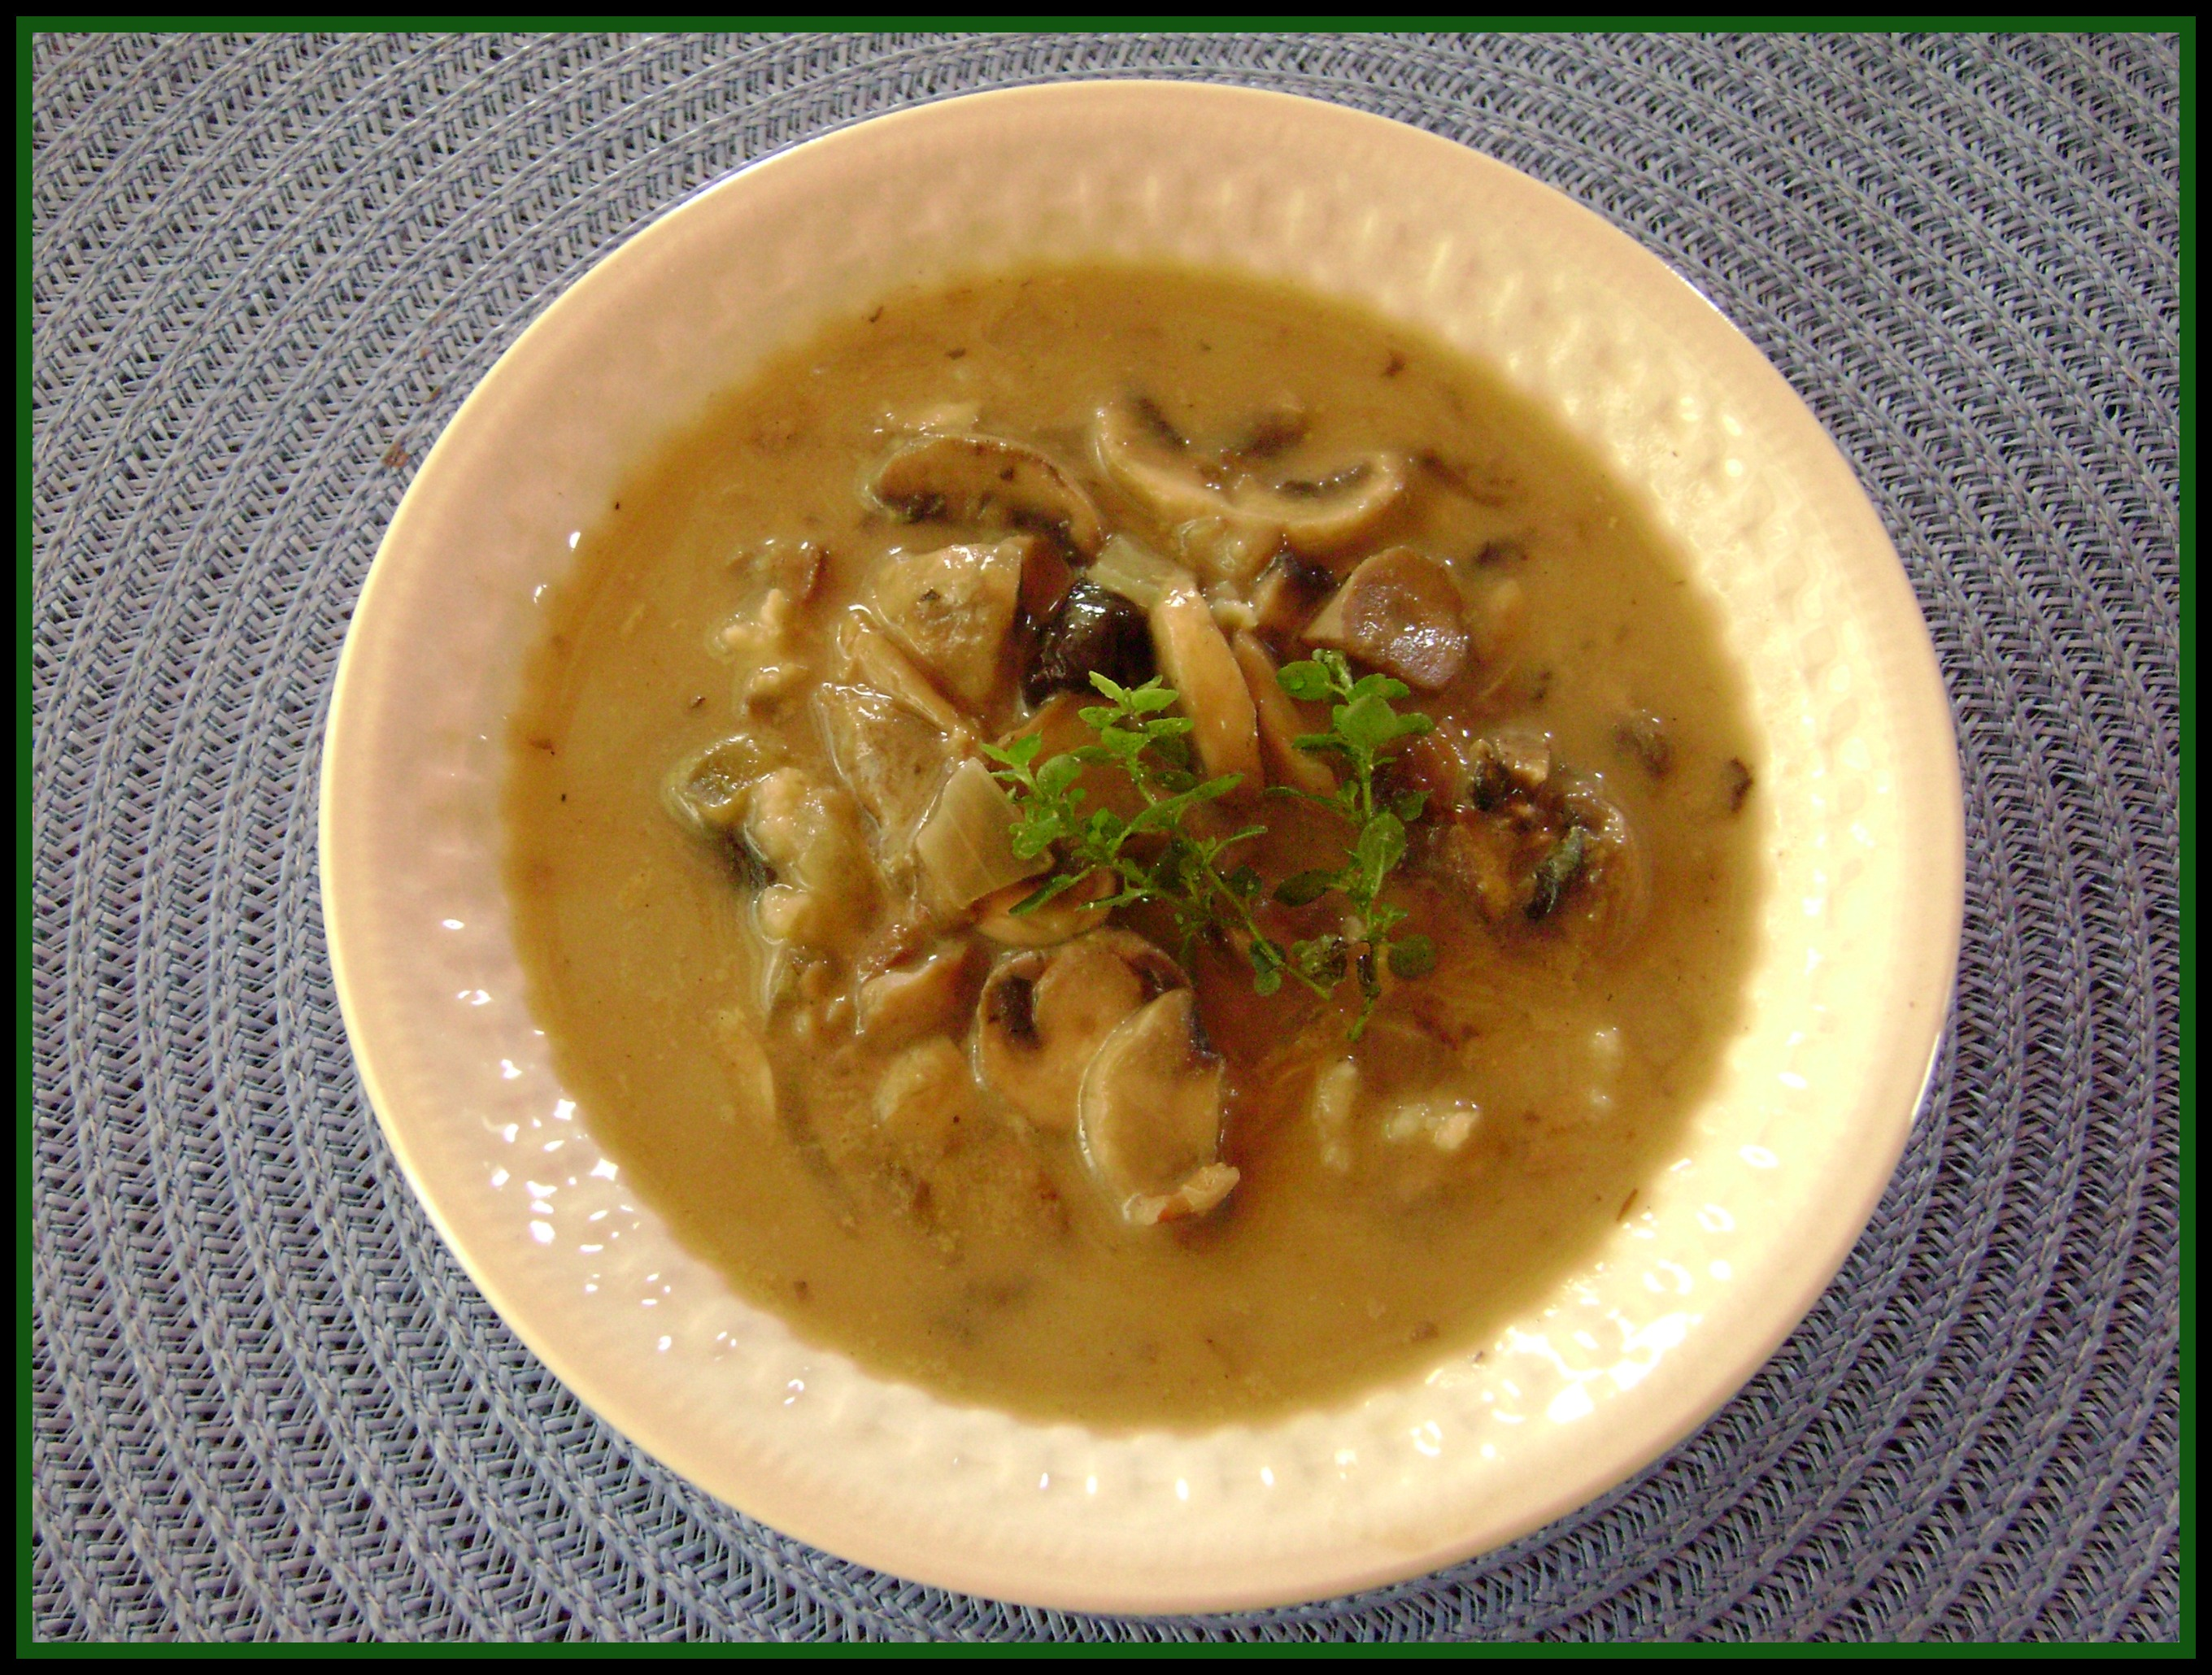 Meatless Monday: Mushroom and Wild Rice Soup - The Greenbacks Gal